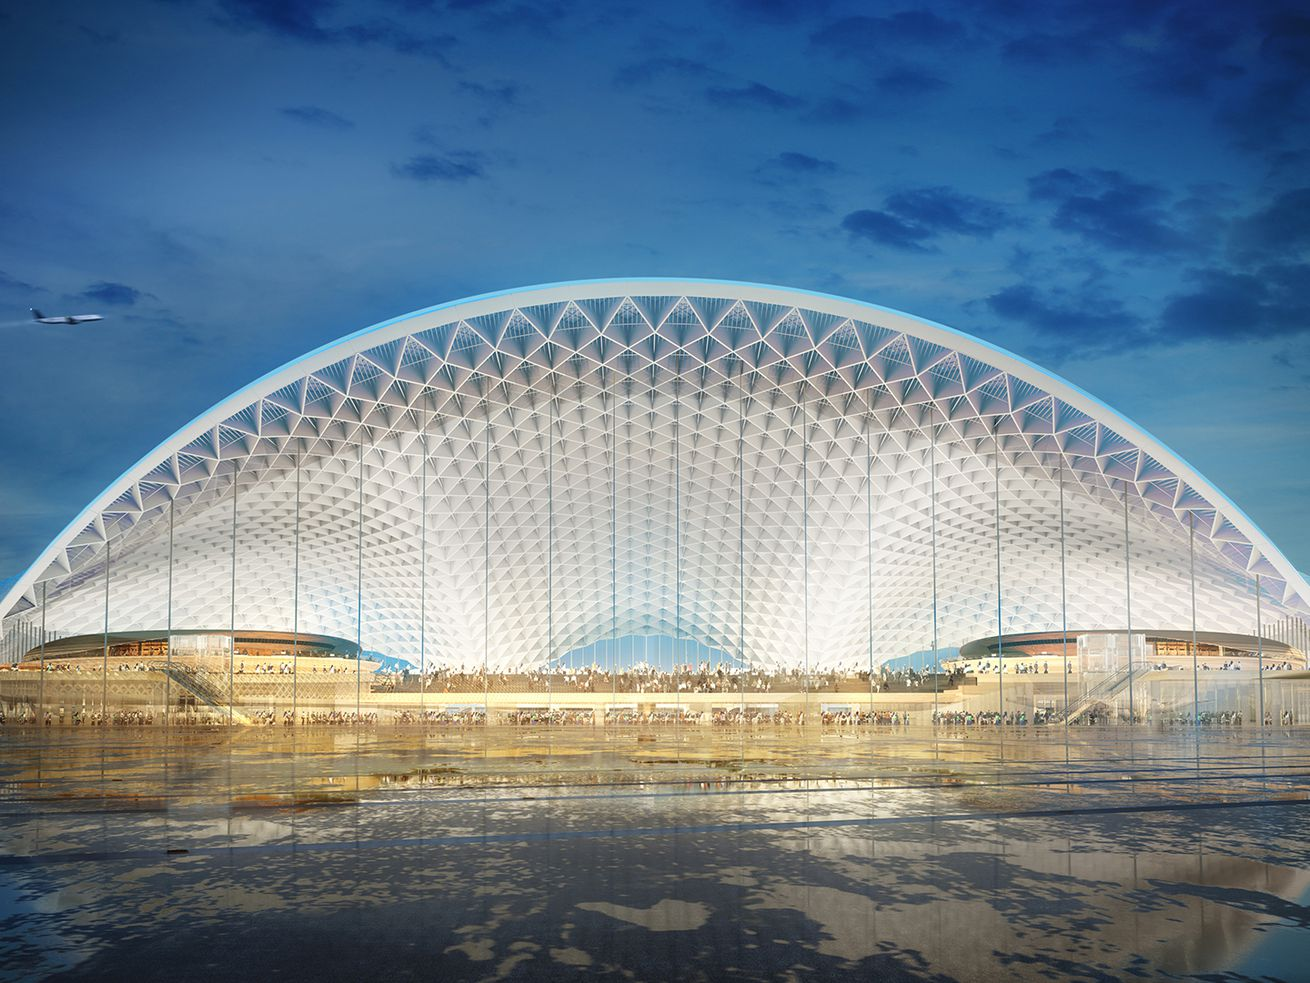 A rendering of the O'Hare Global Terminal by Foster Epstein Moreno JV.